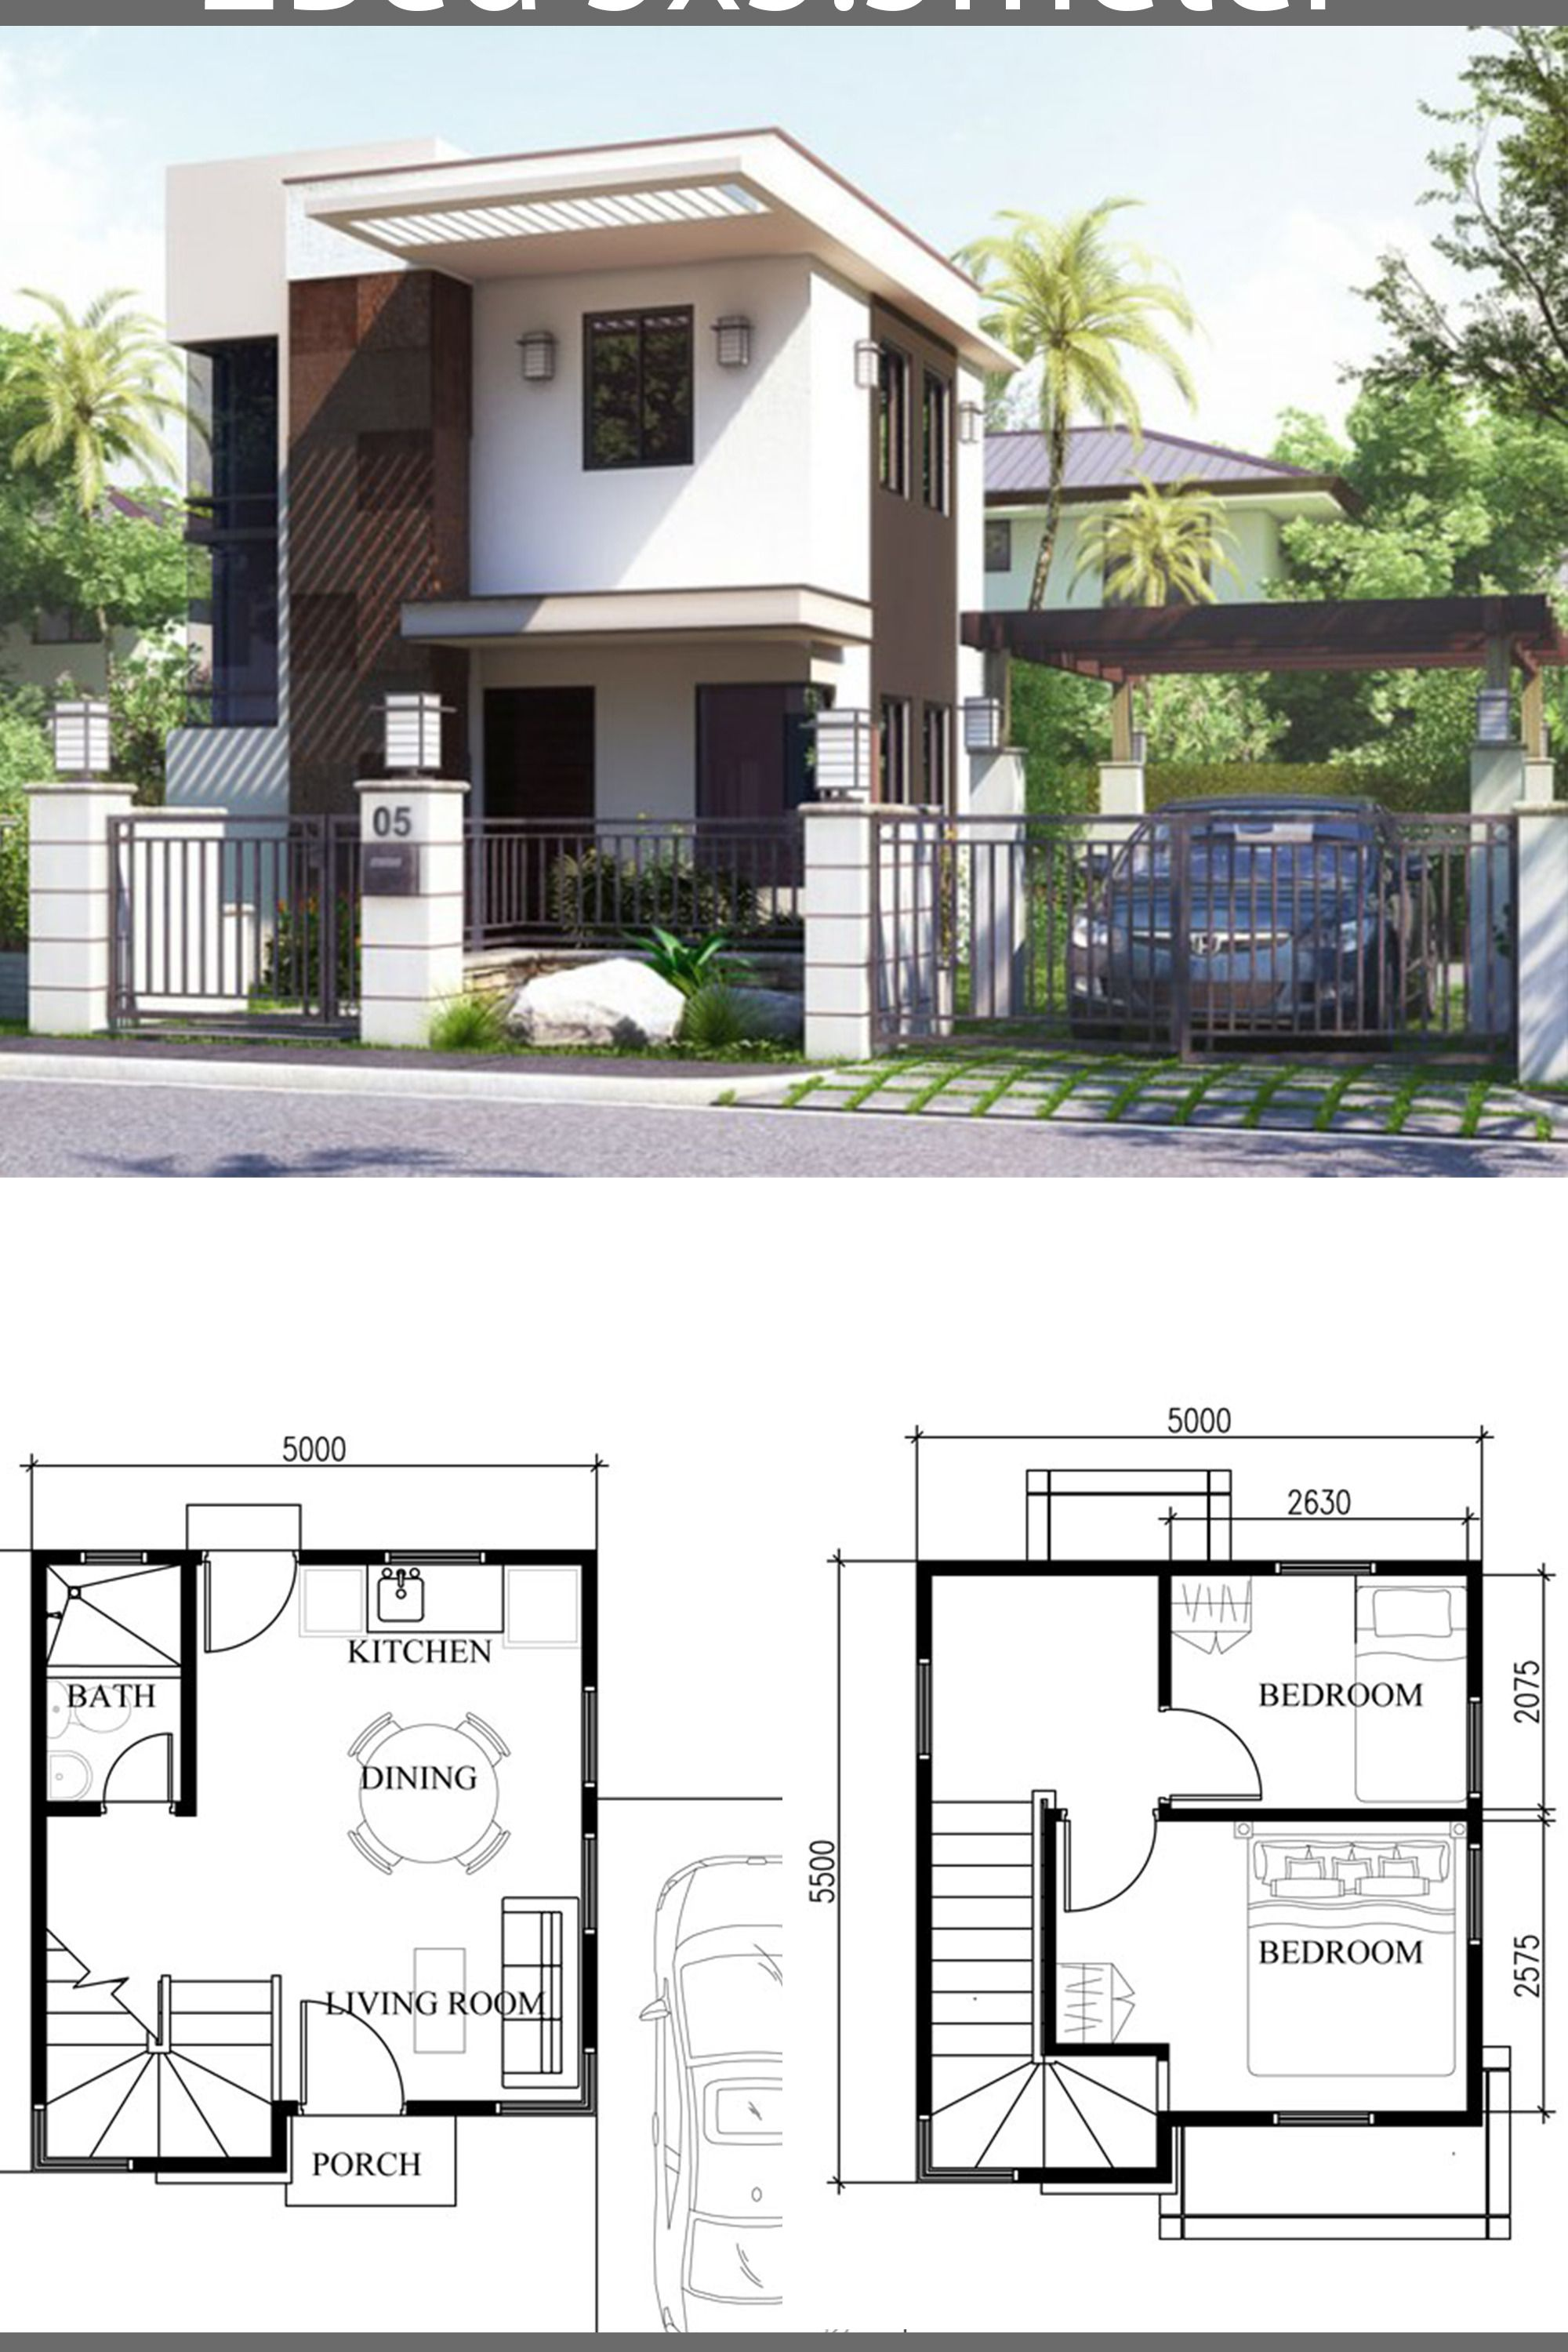 Pin By Danita Thata On My Dream Home With Layout Plan House Front Design Micro House Plans House Layouts